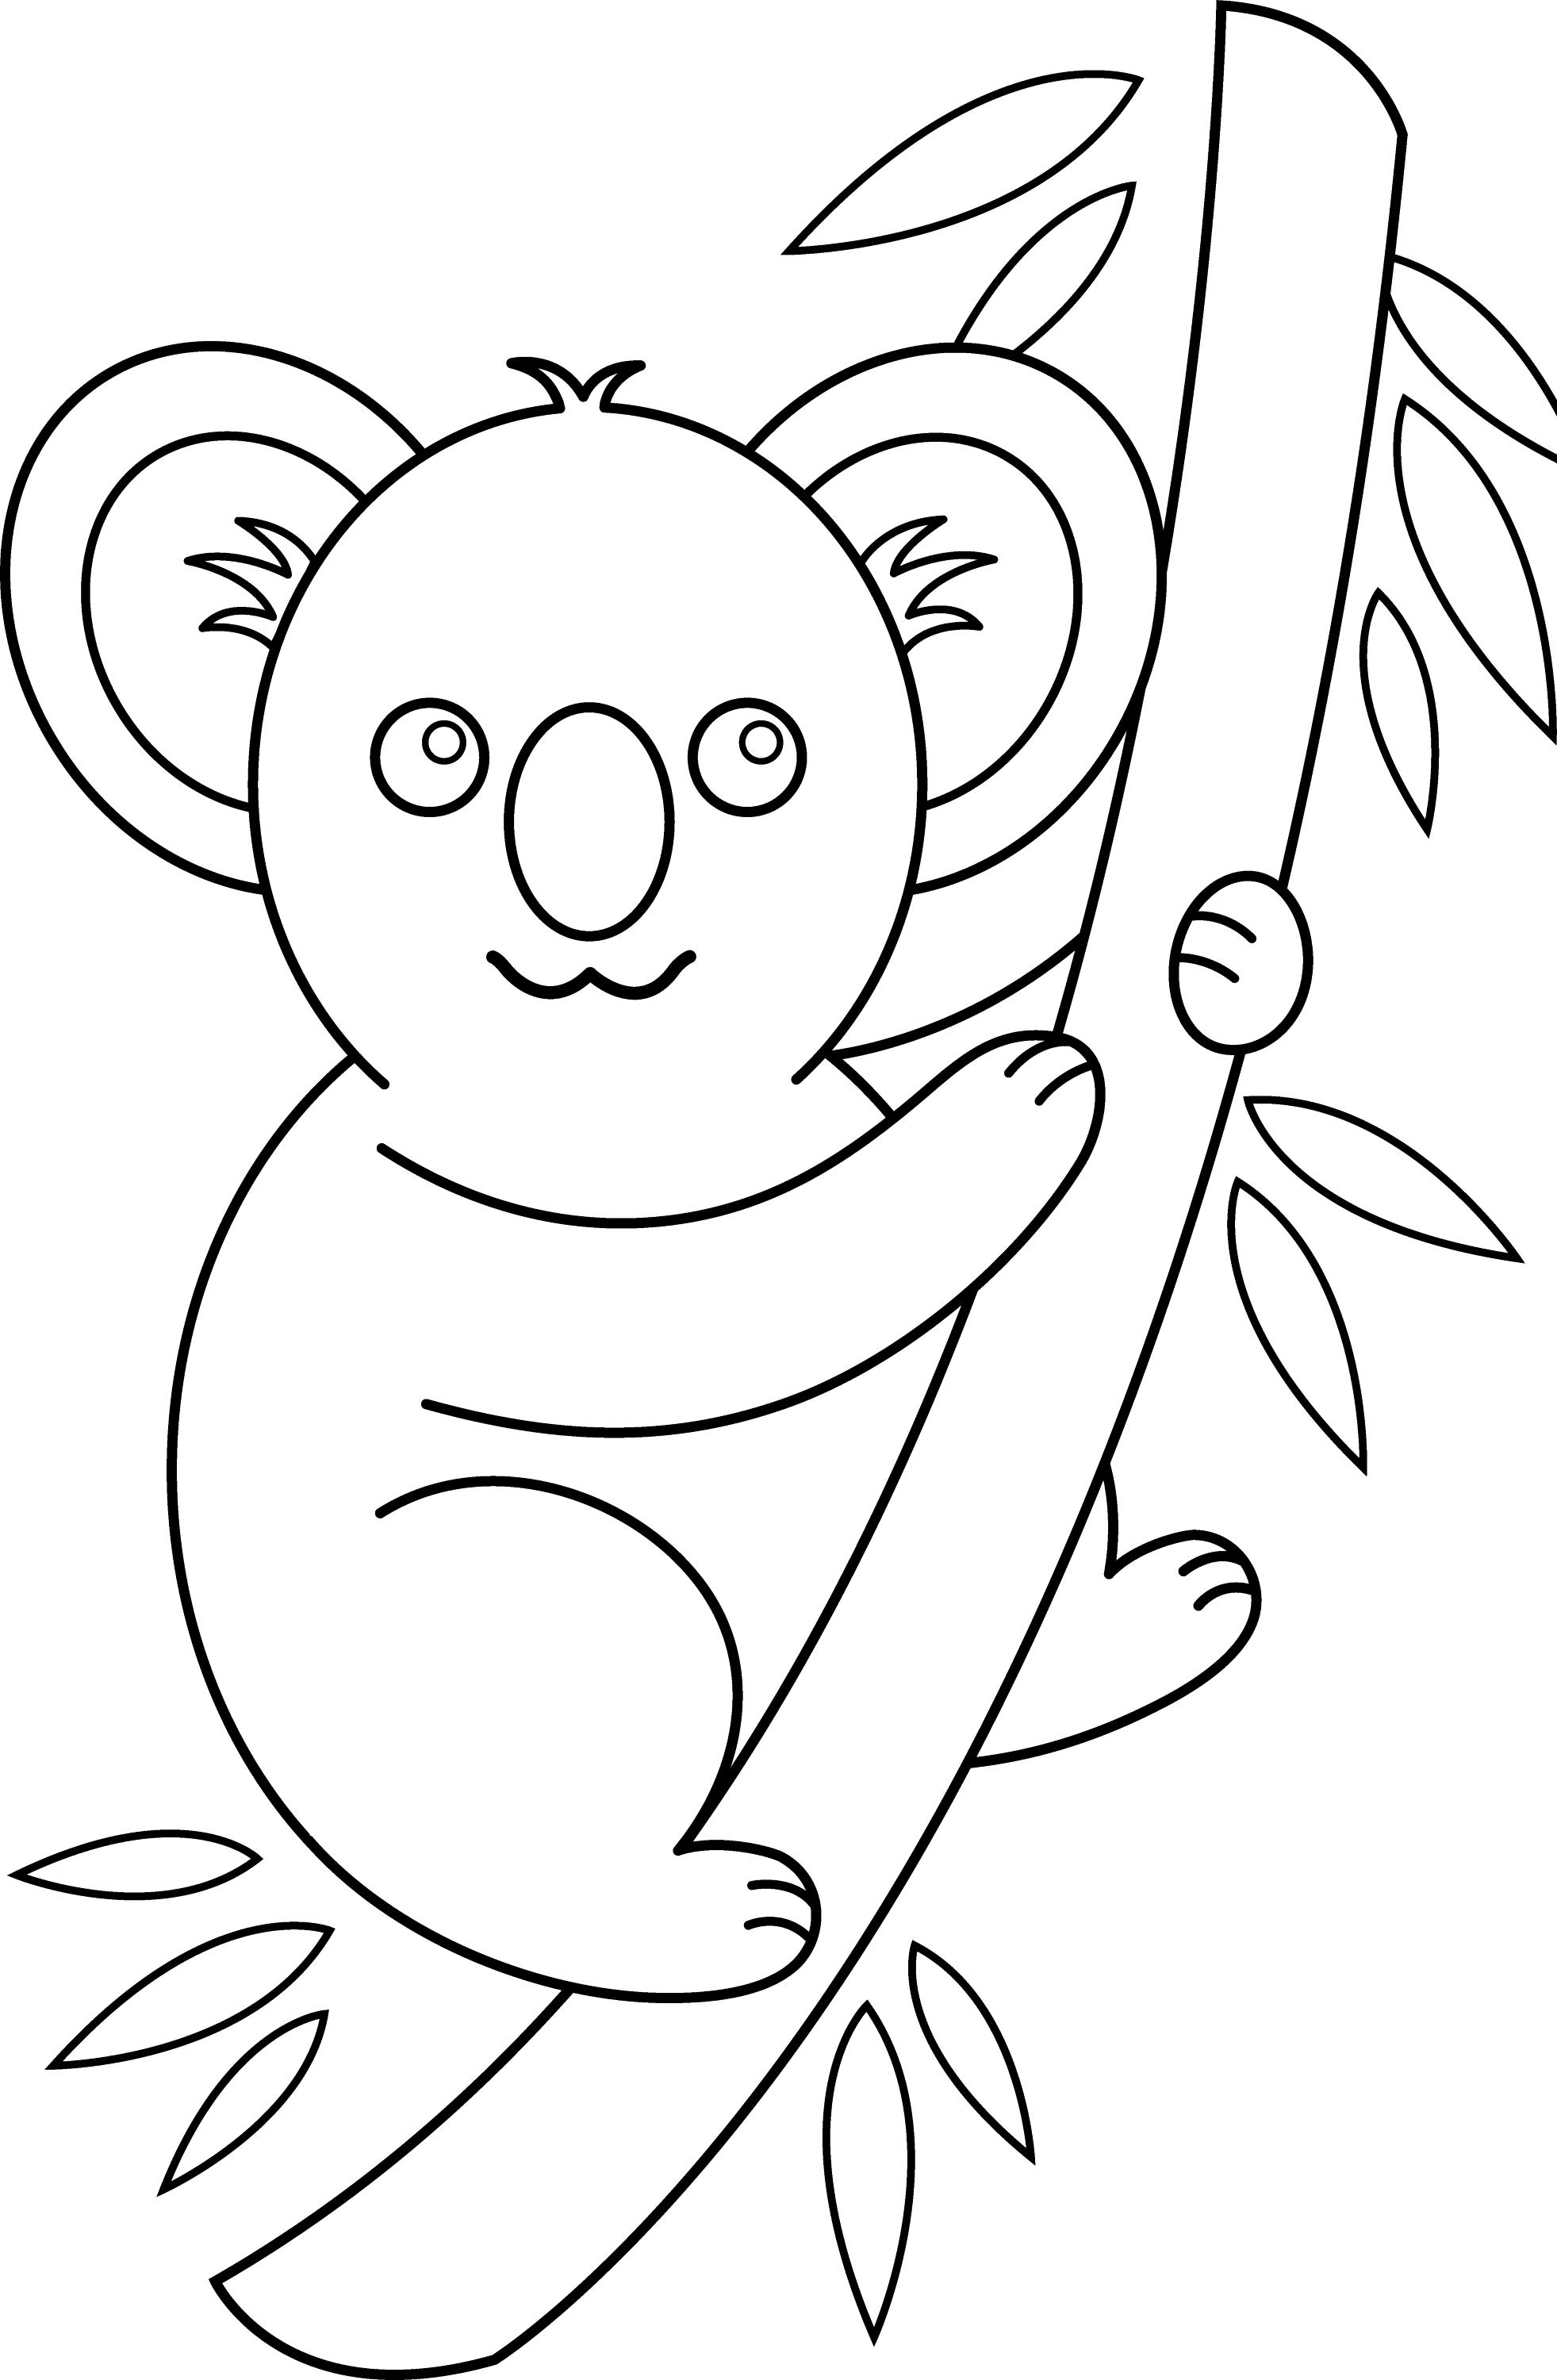 animal outlines to color drawing outlines of animals at getdrawings free download color animal to outlines